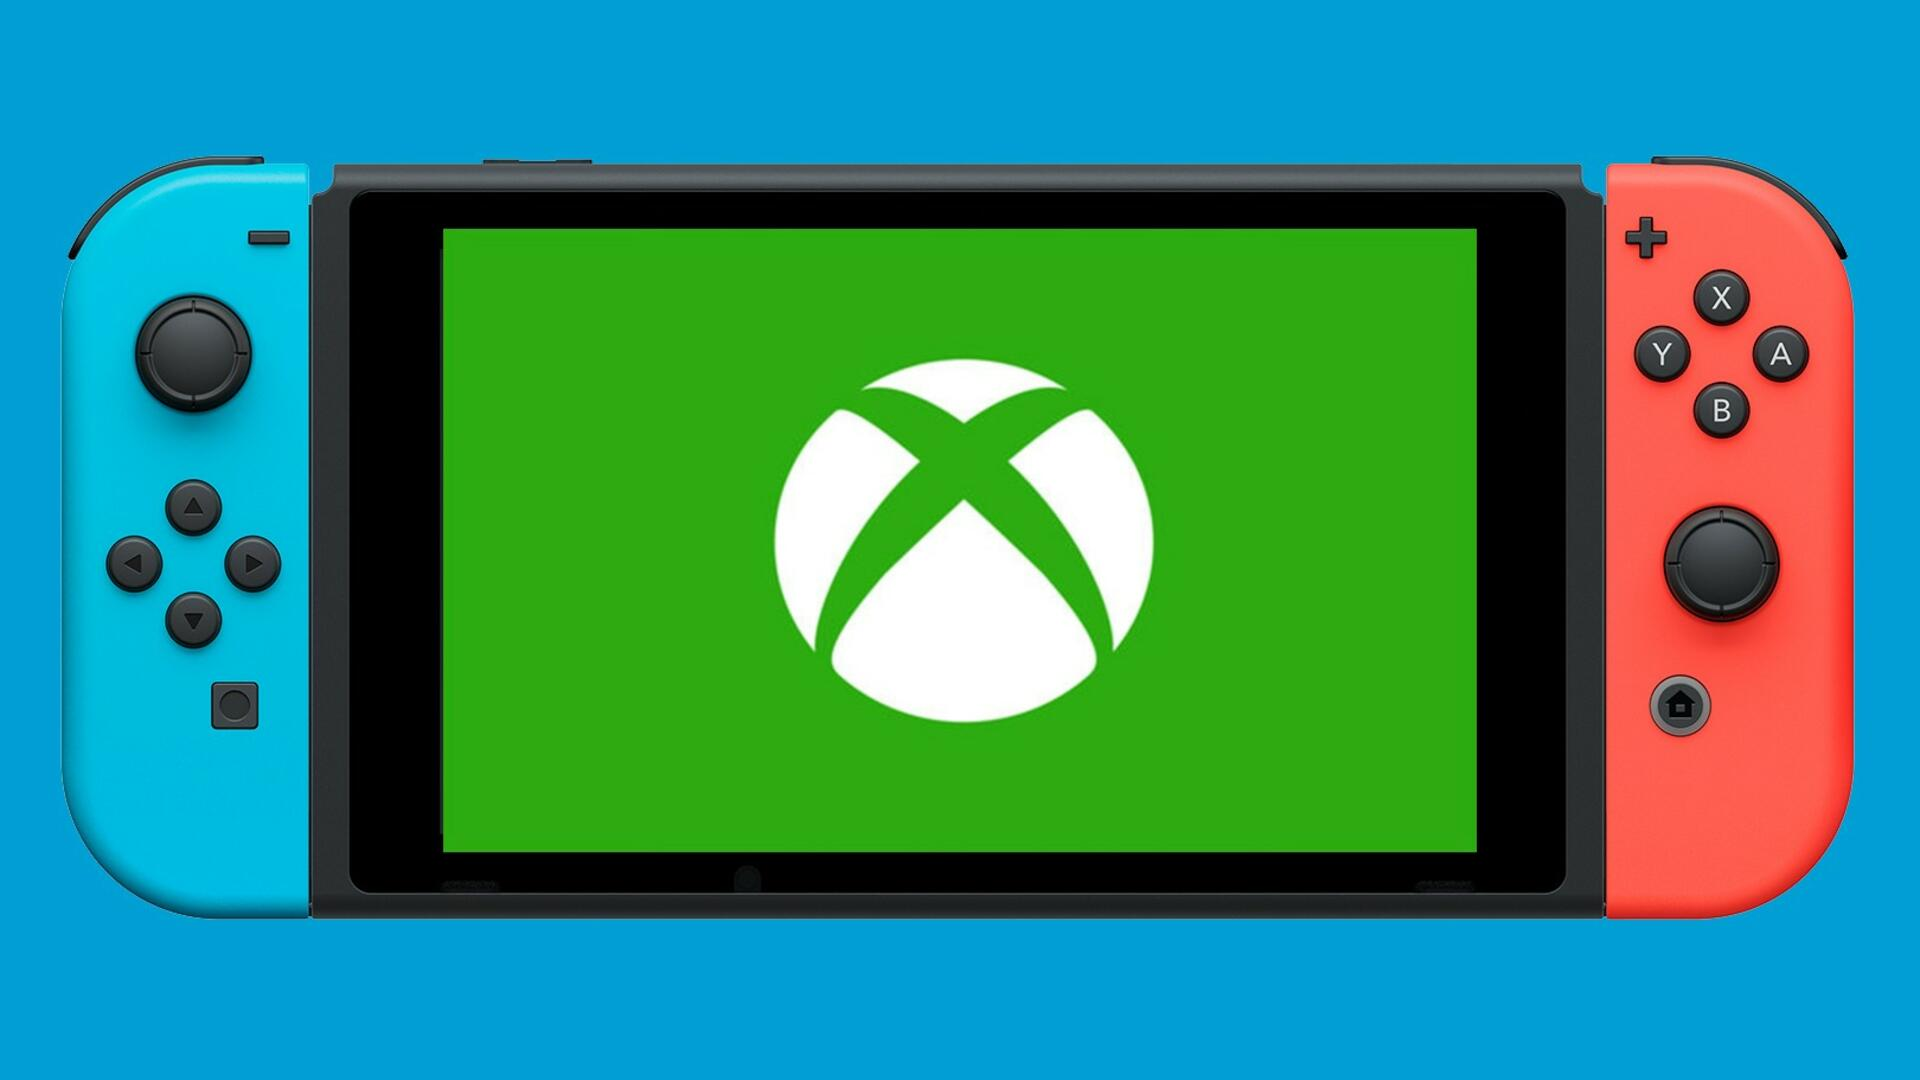 French Site Claims Miyamoto to Appear at Xbox E3 Press Conference as Microsoft Promotes Nintendo Event